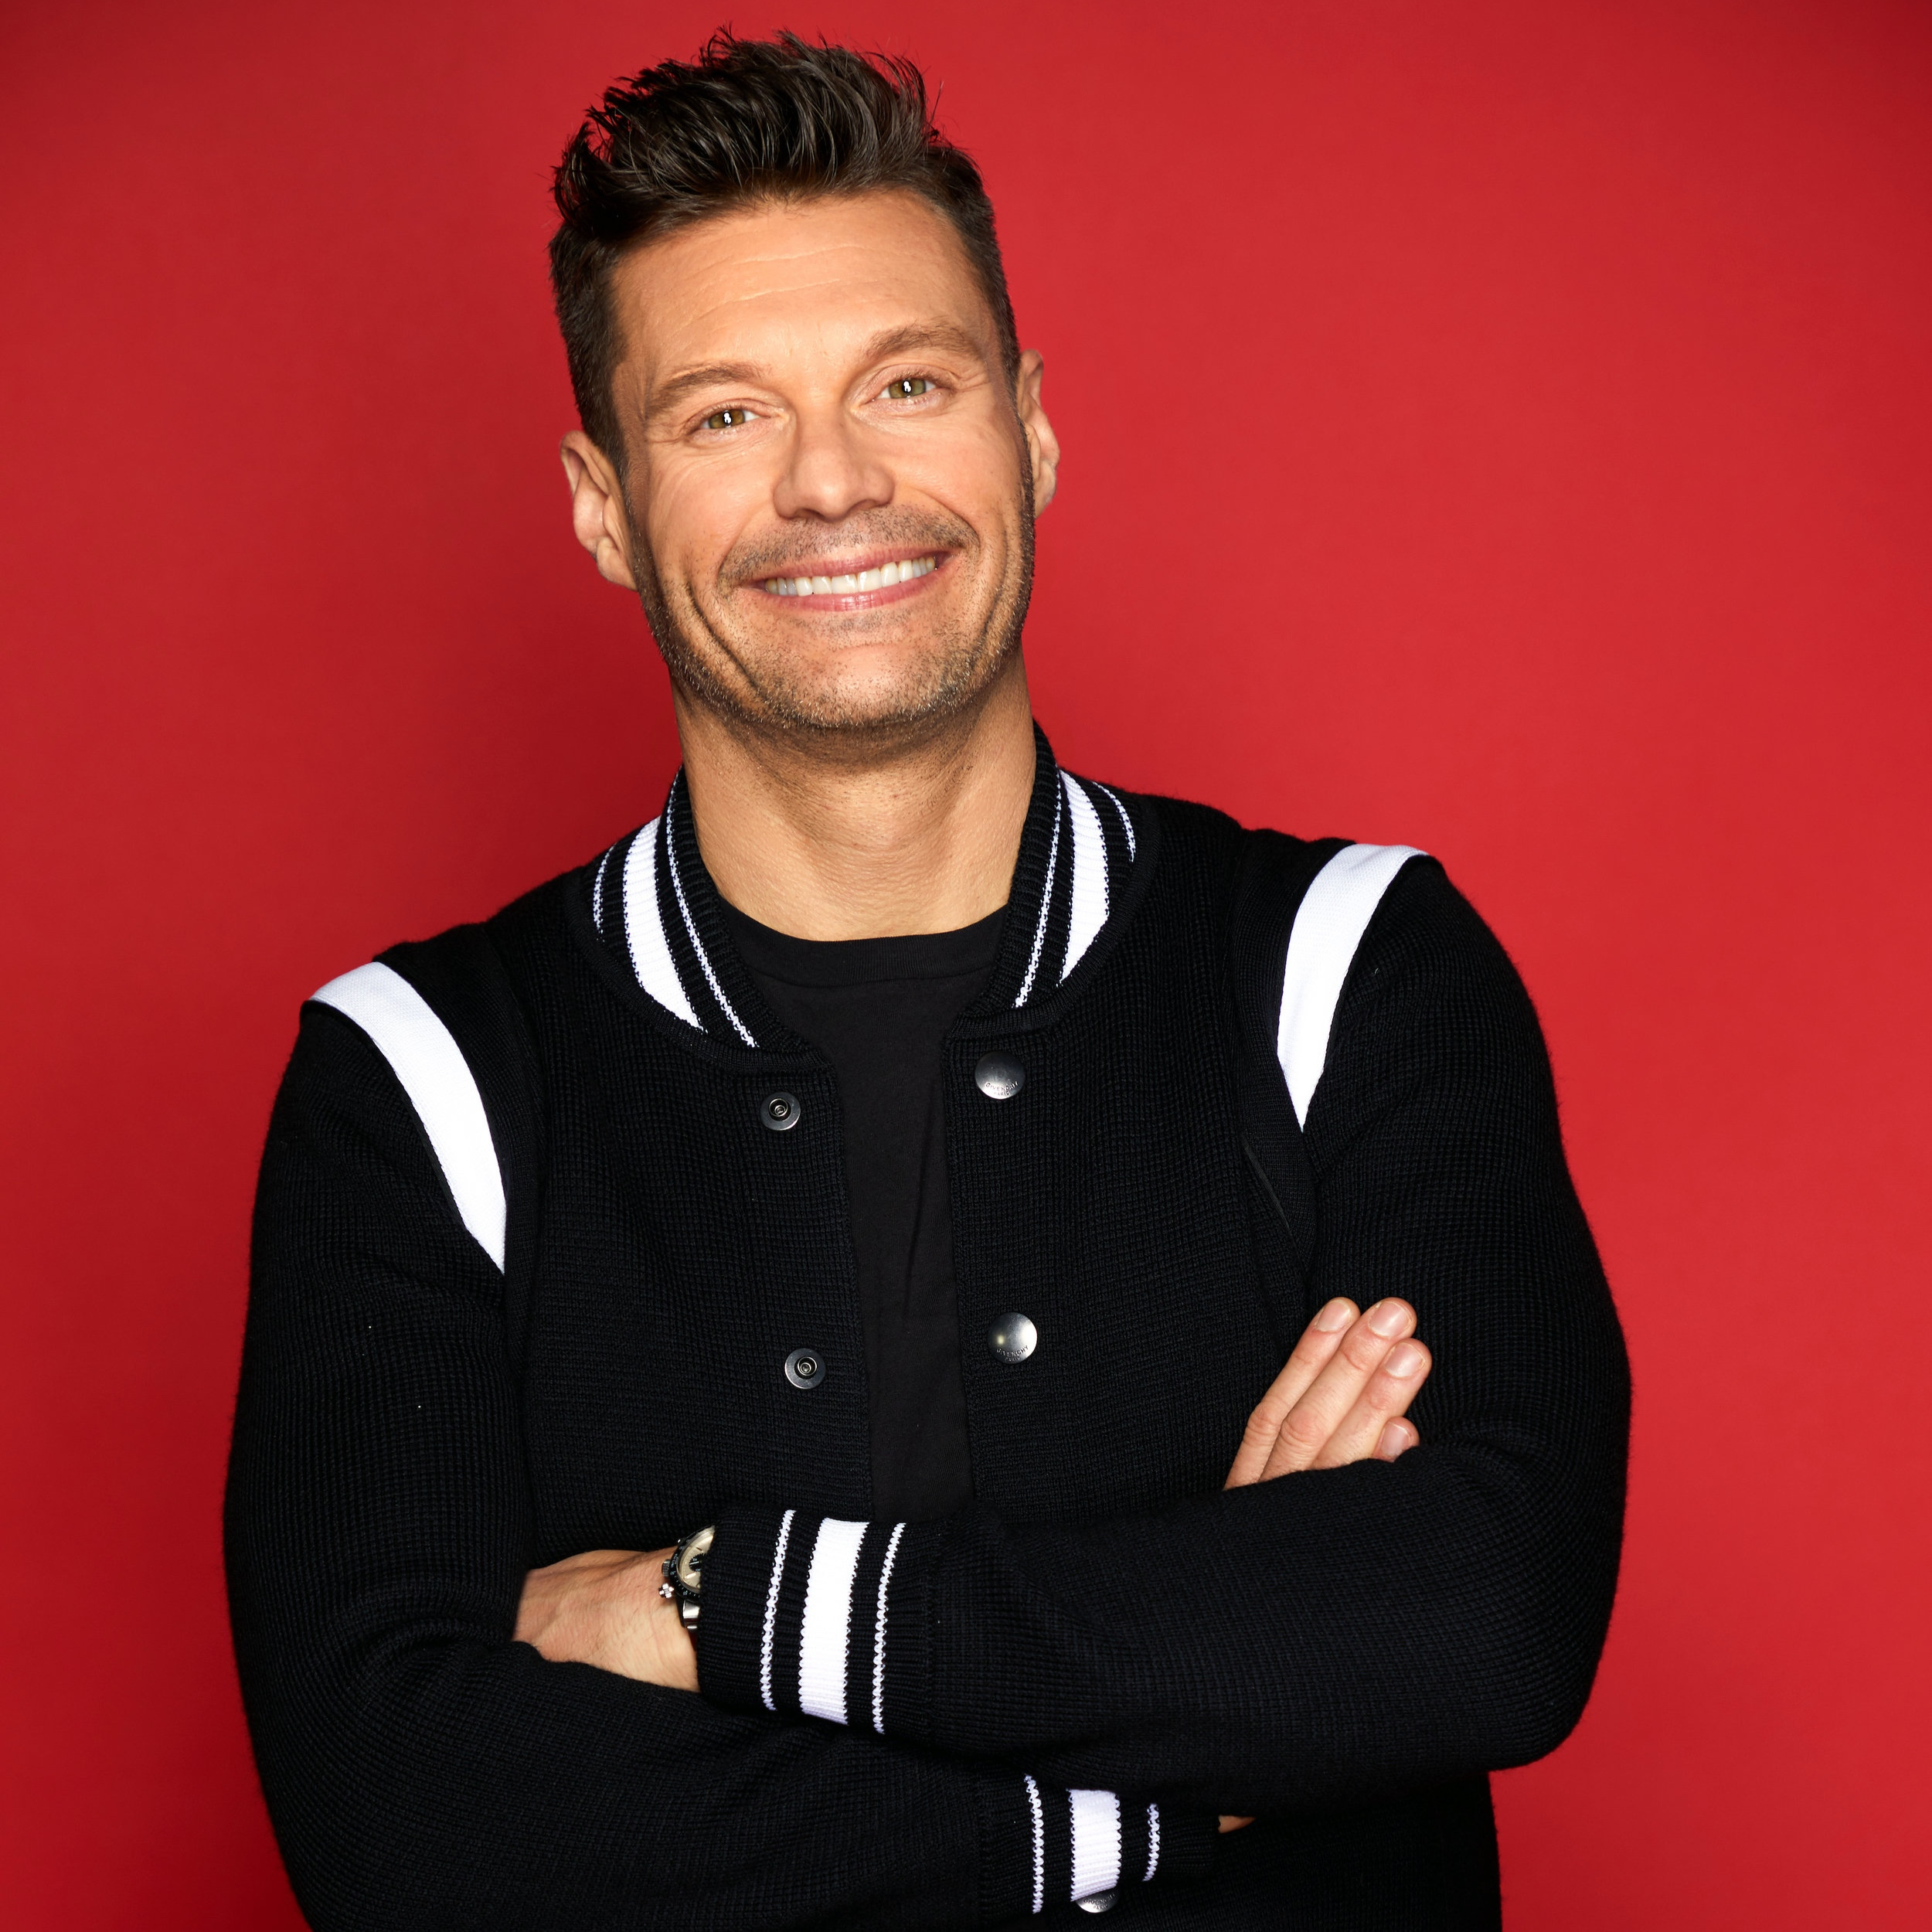 Ryan Seacrest - Los Angeles / AT40 / On Air with Ryan Seacrest